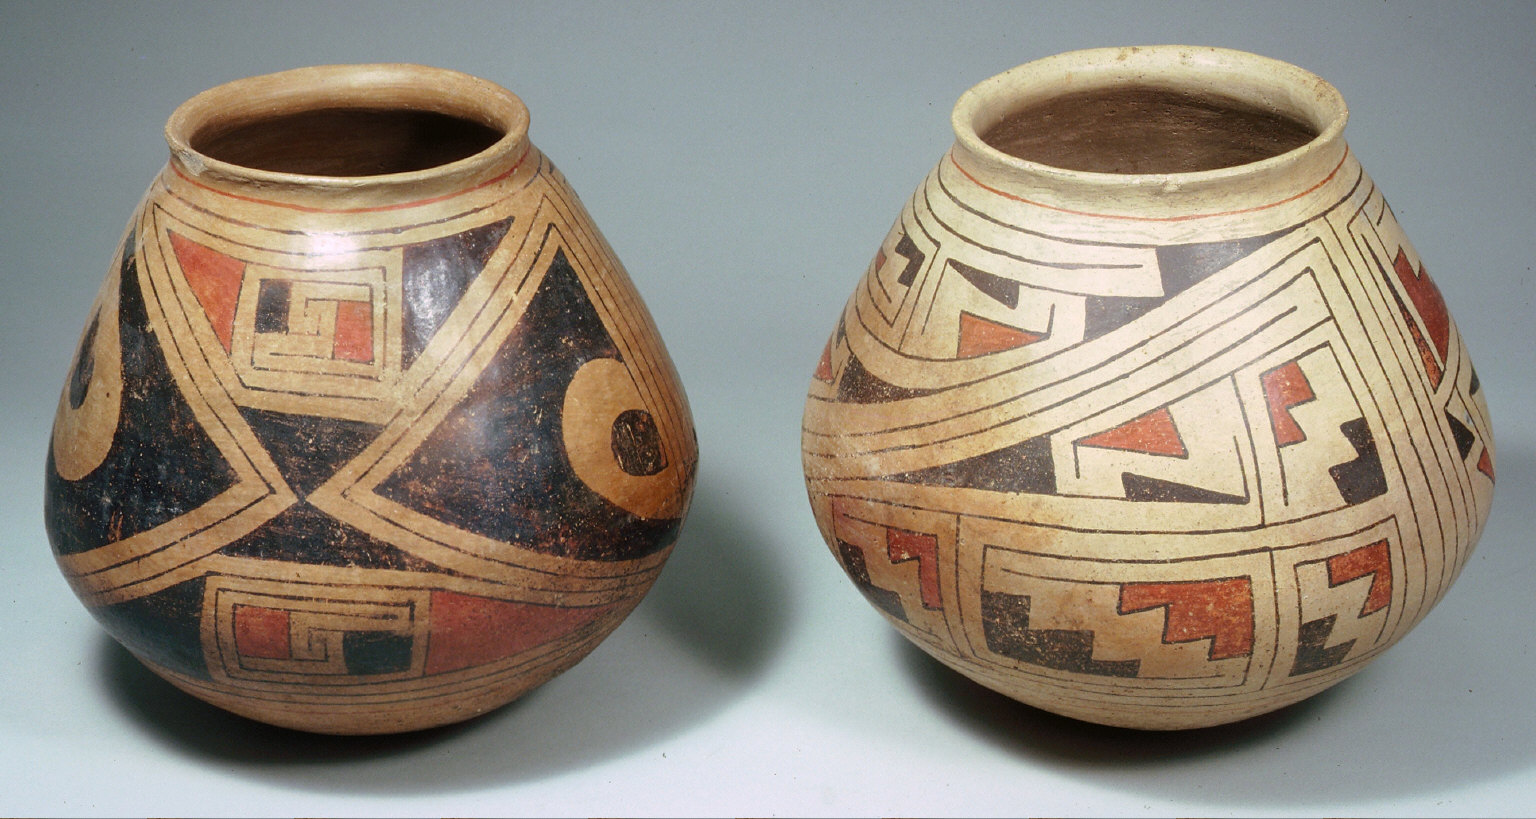 Bowl with kill hole red and white geometric designs on inside